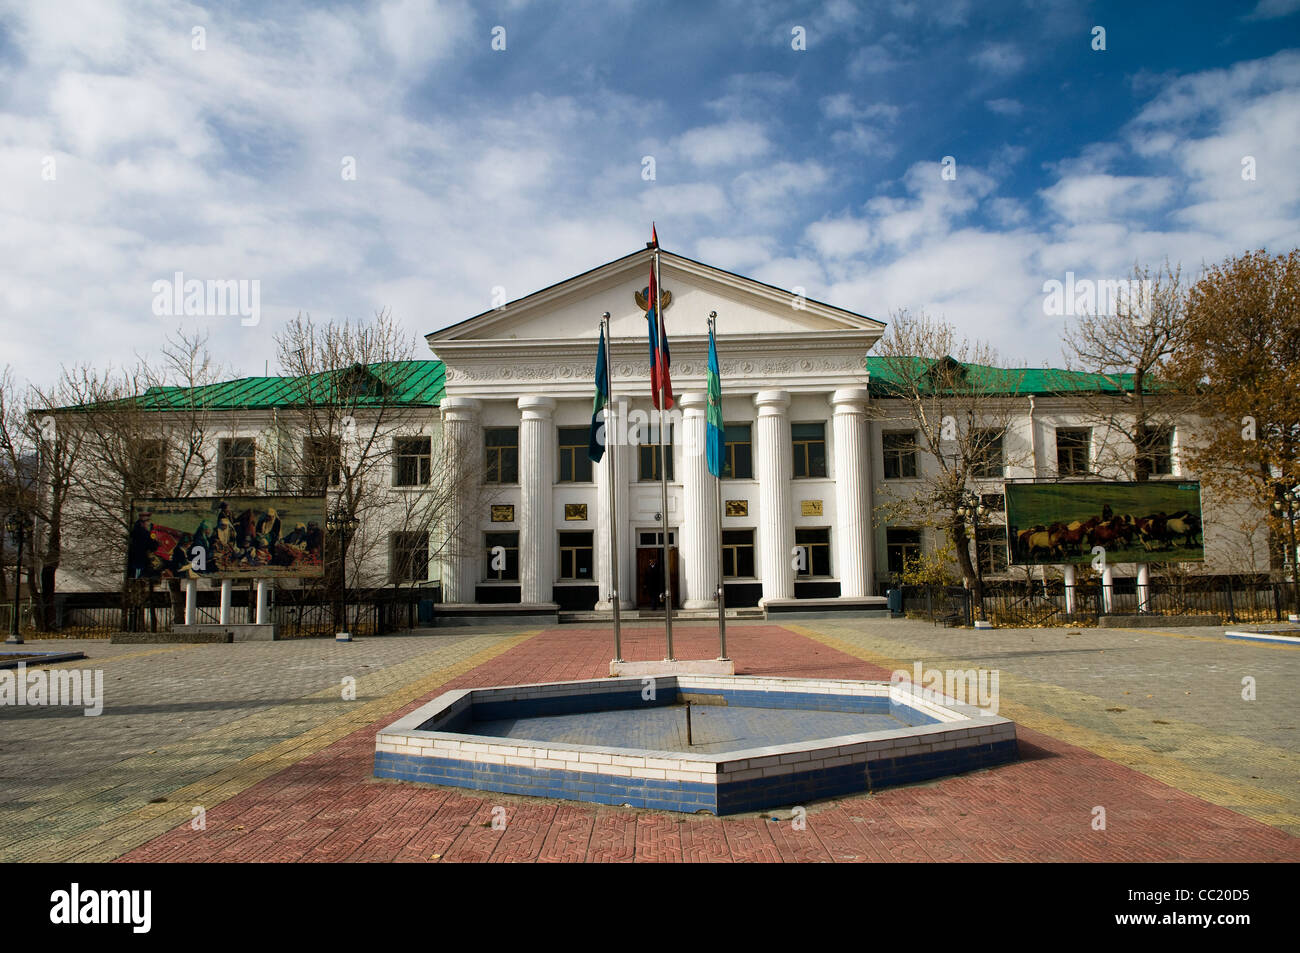 Bayan Ulgii municipality building. Stock Photo